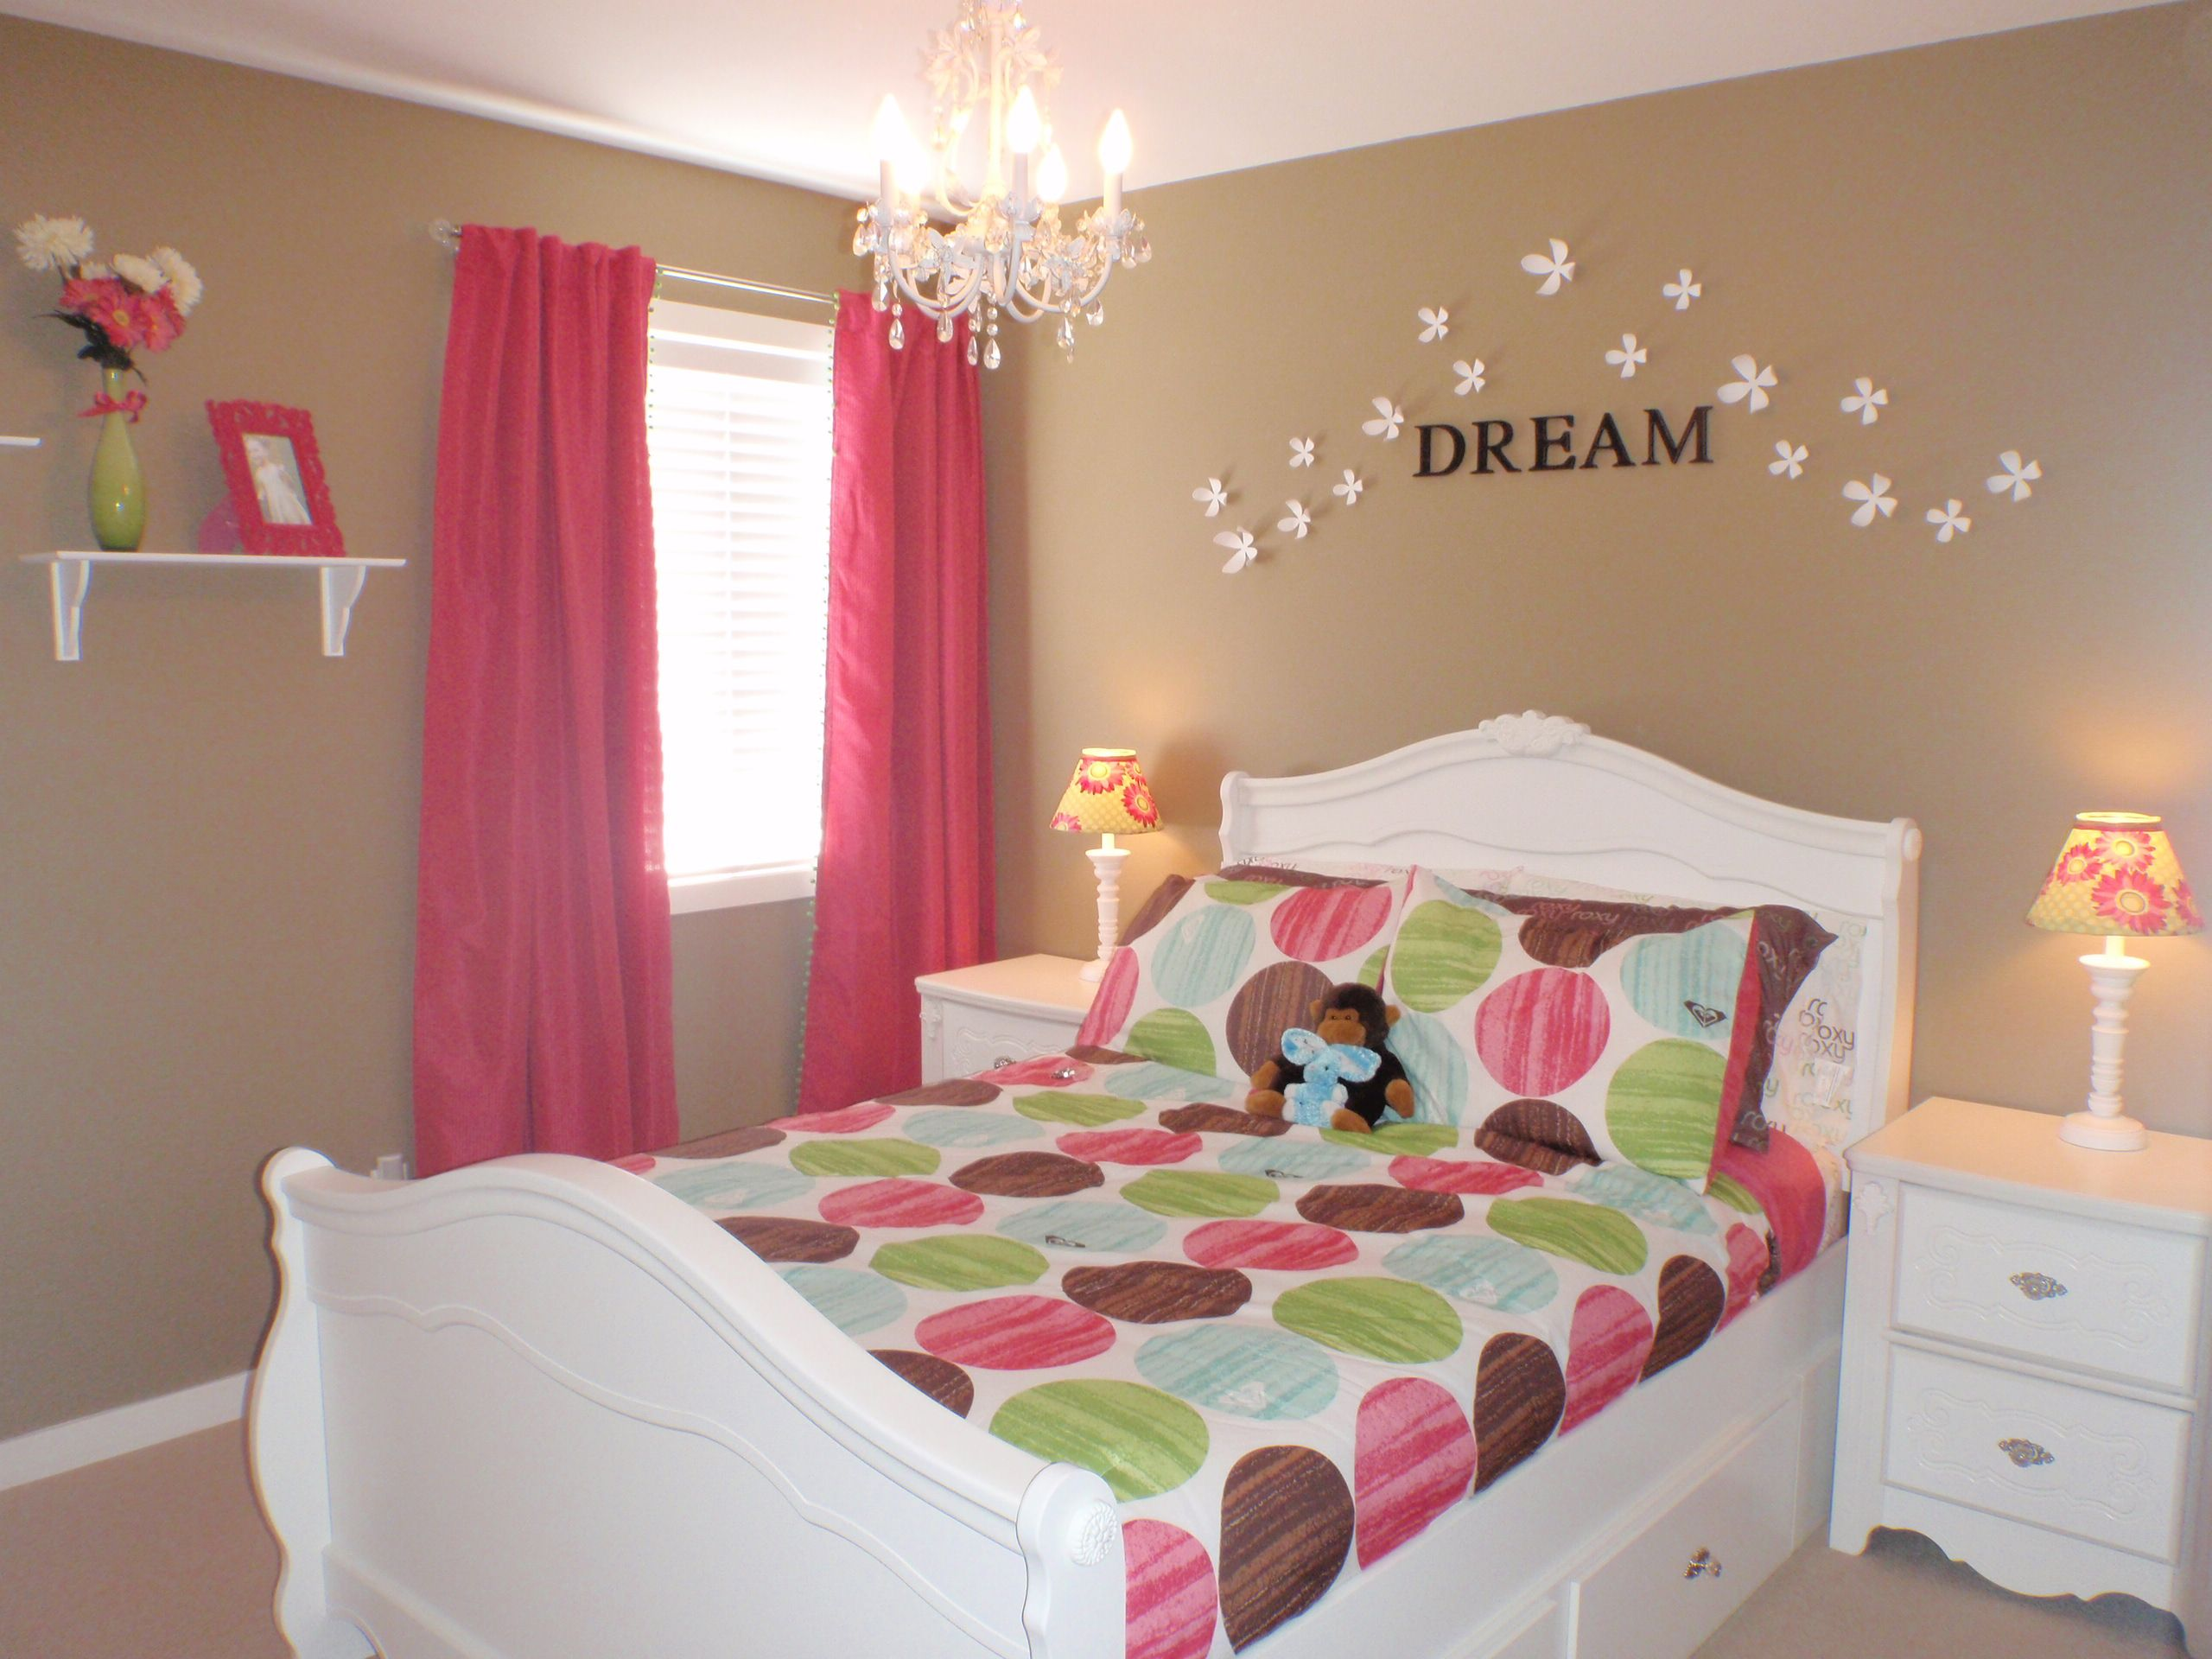 Cream and green bedroom ideas - I Like The Idea Of Cream Walls With Pops Of Color Hot Pink